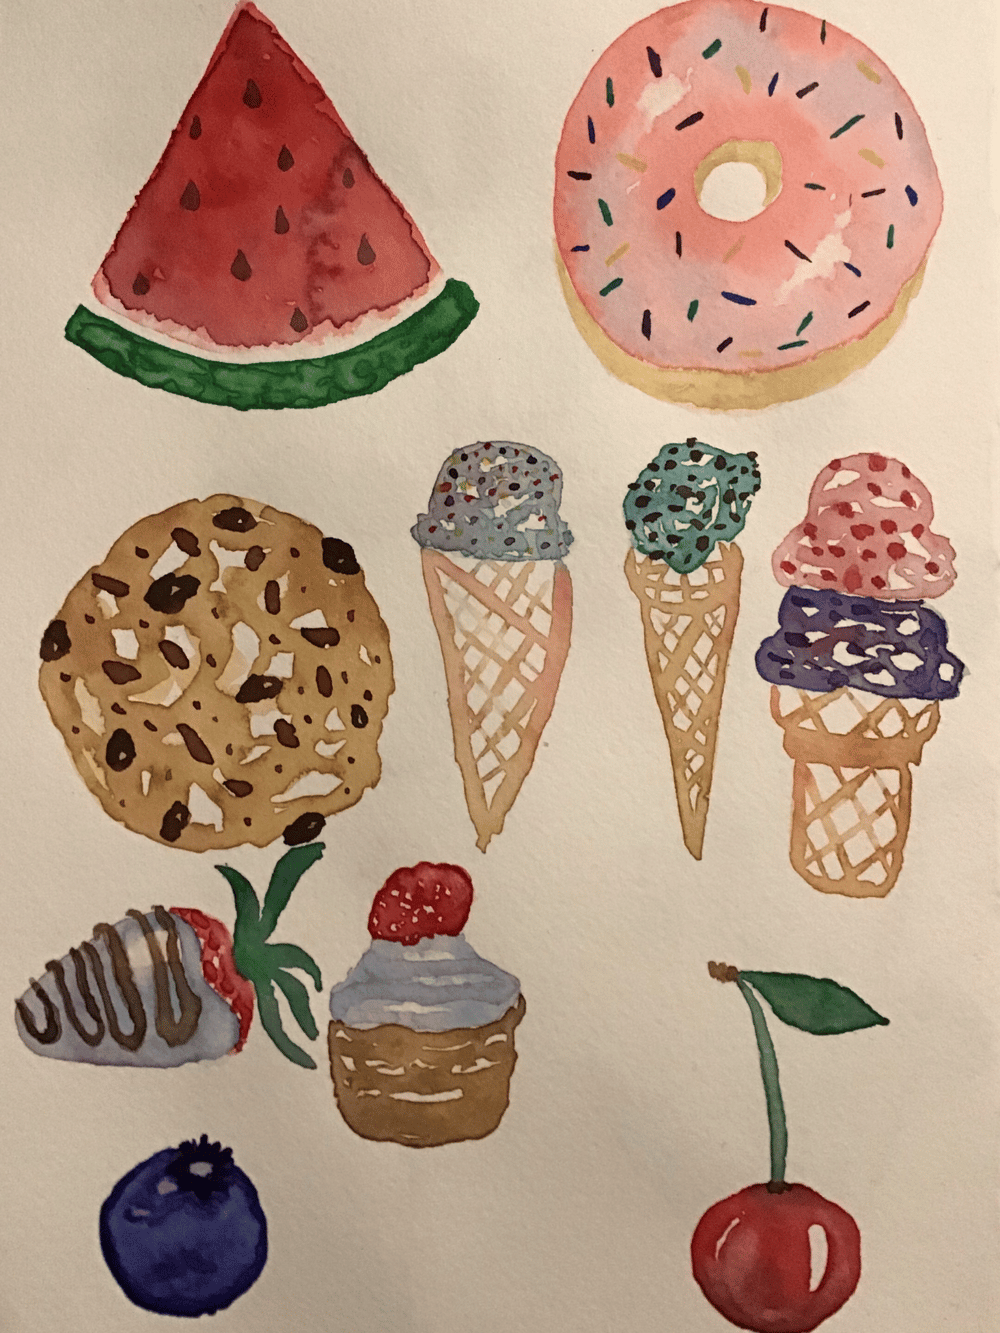 Sweets - image 1 - student project